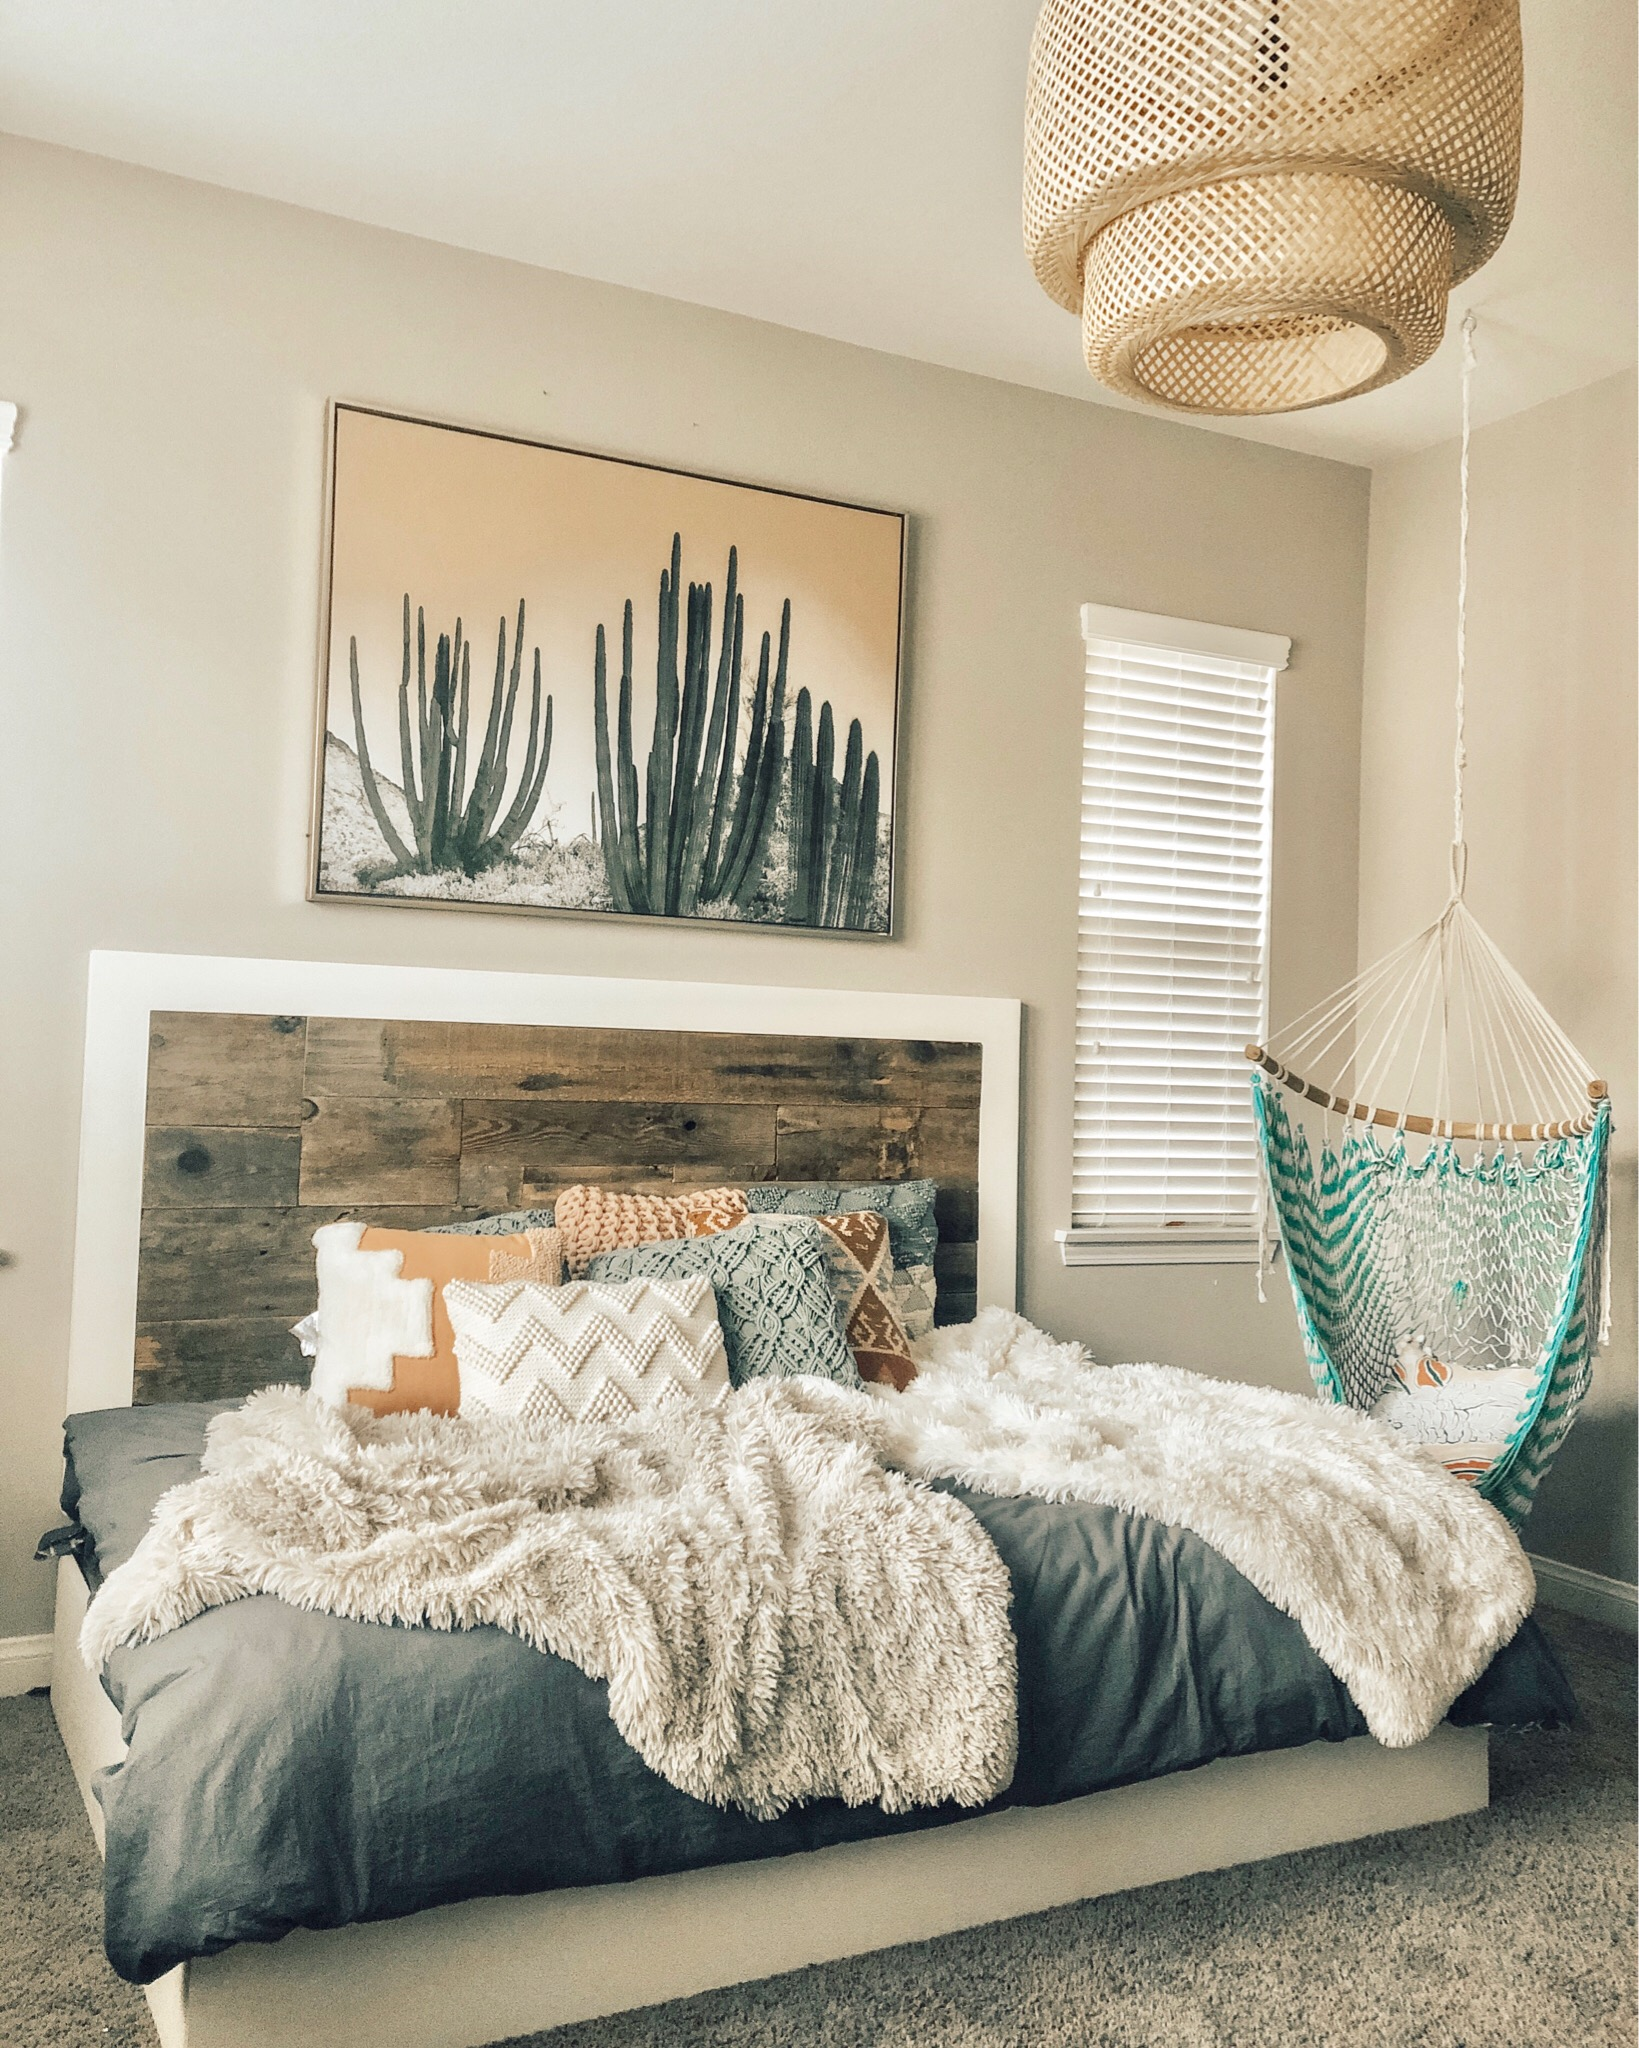 UPDATING OUR GUEST ROOM + CURRENT HOME FINDS- Jaclyn De Leon Style + home interior inspo + bohemian style decor + guest bedroom + world market + target style + home finds under $50 + home design inspiration